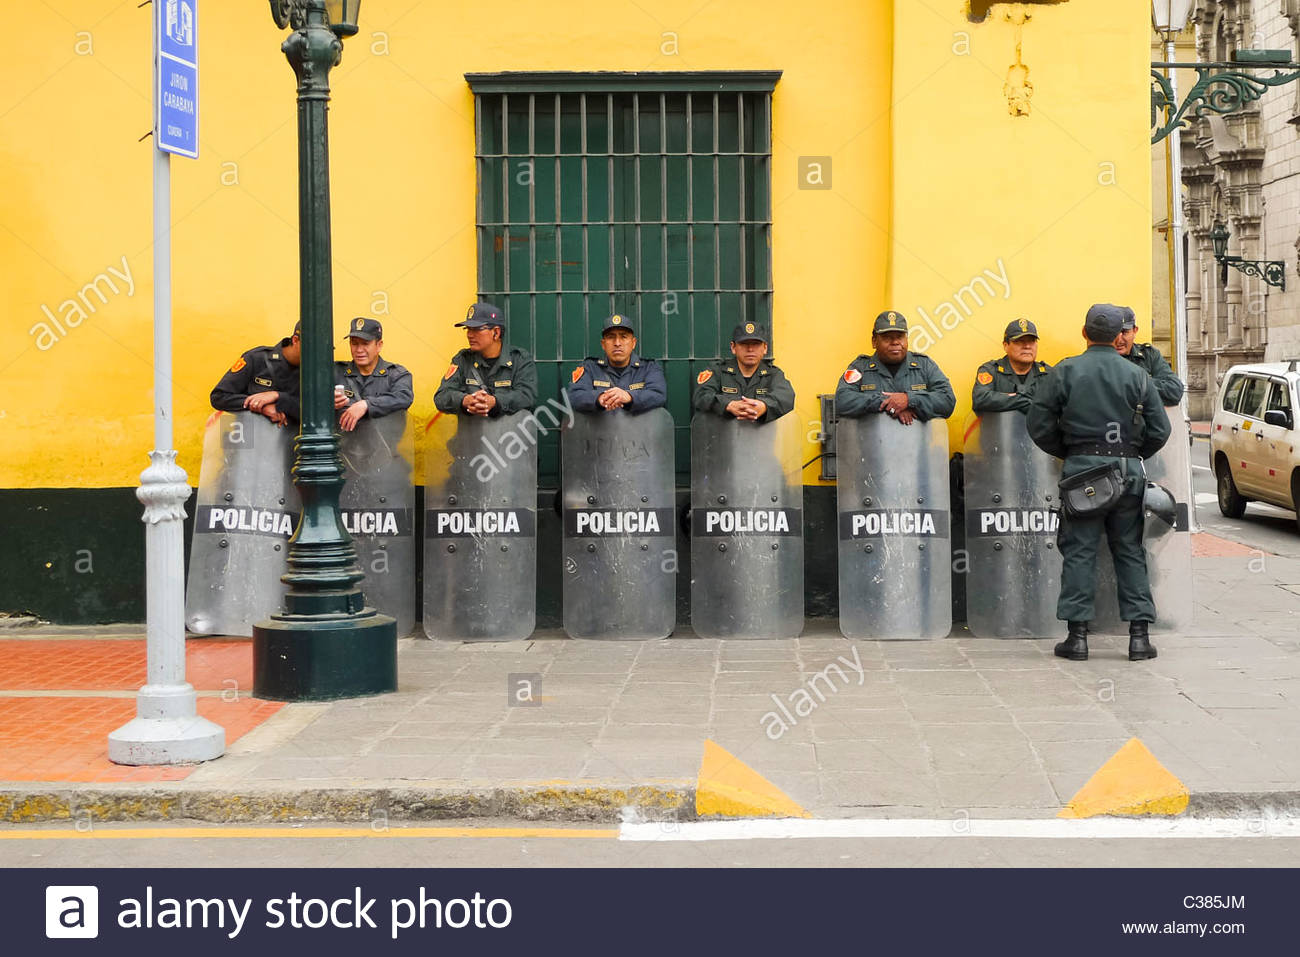 Group of Police lined up against a wall holding shields. Lima, Peru - Stock Image